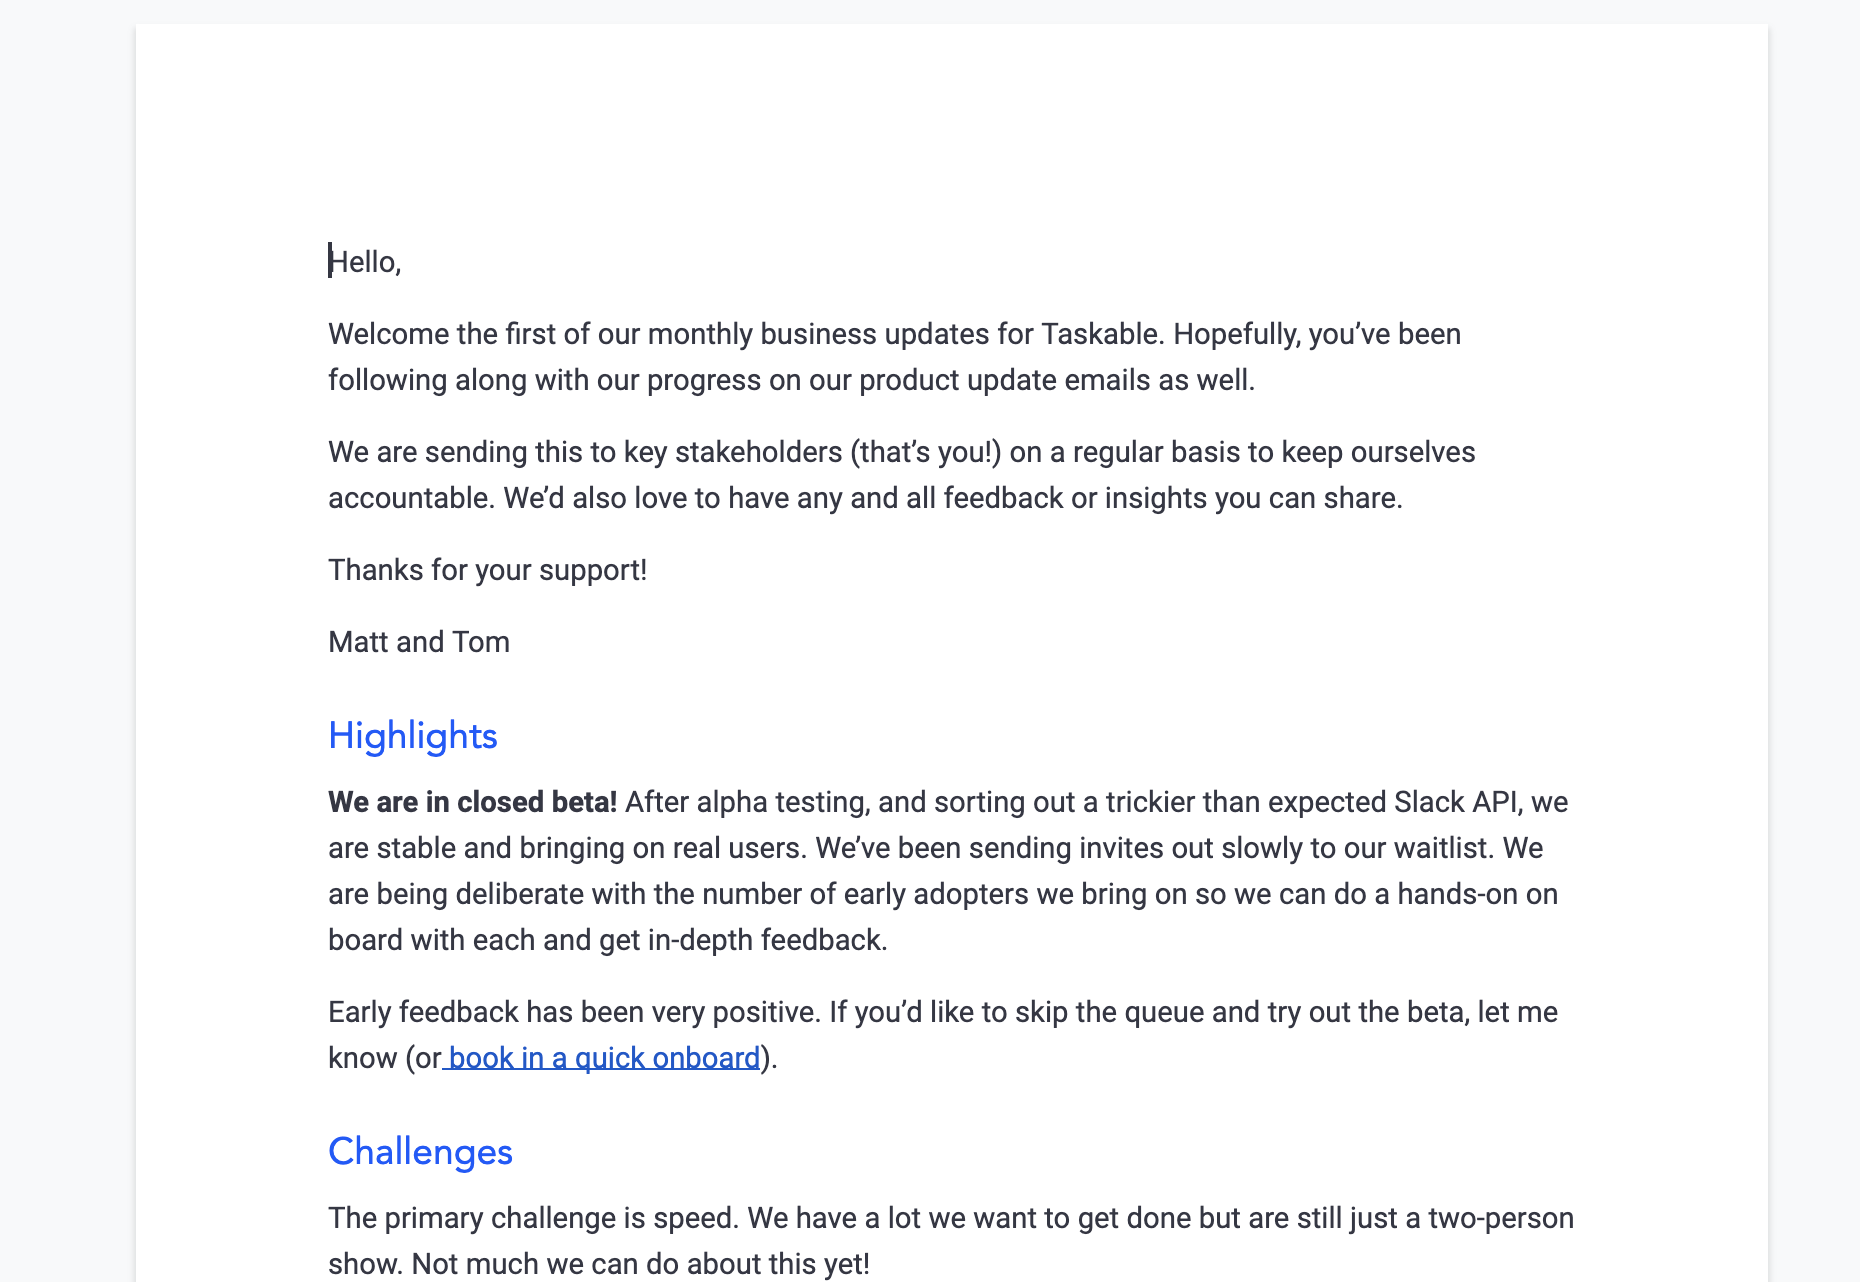 Our first investor update for Taskable from March 2020